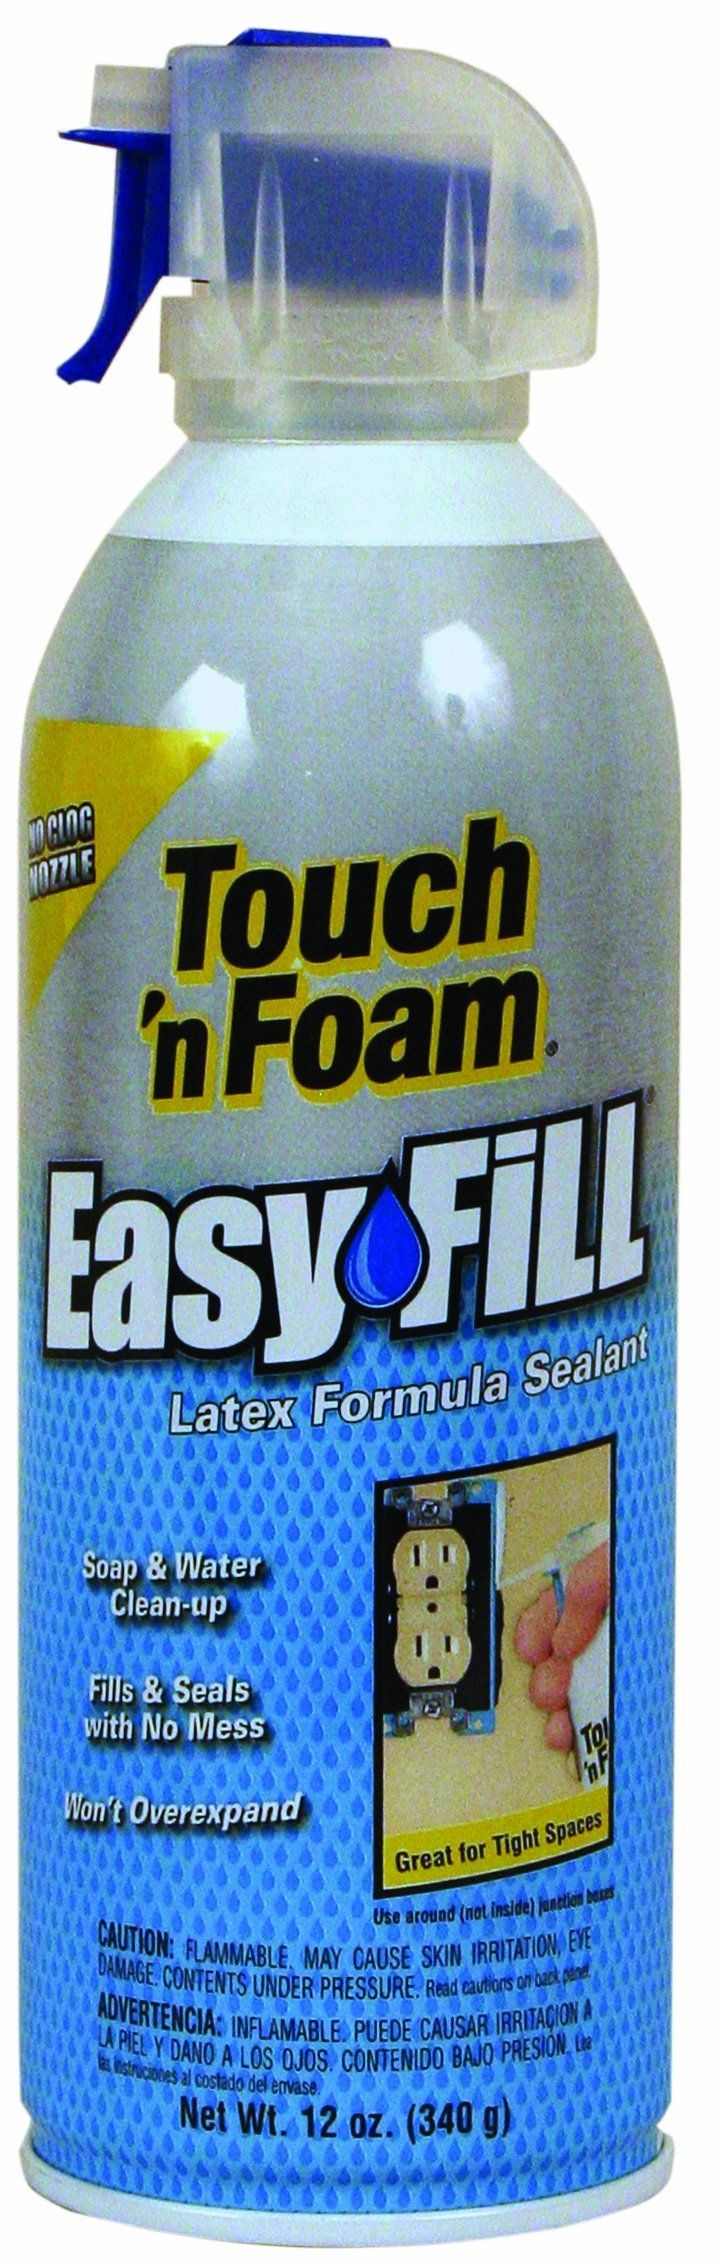 Touch 'n Foam 4001401212 EasyFill Latex Formula Sealant $4.83+5.42 shipping via Amazon. (Needed: Sealant, latex base foam sealant, min expand, water clean up, water washable, and paint-able)